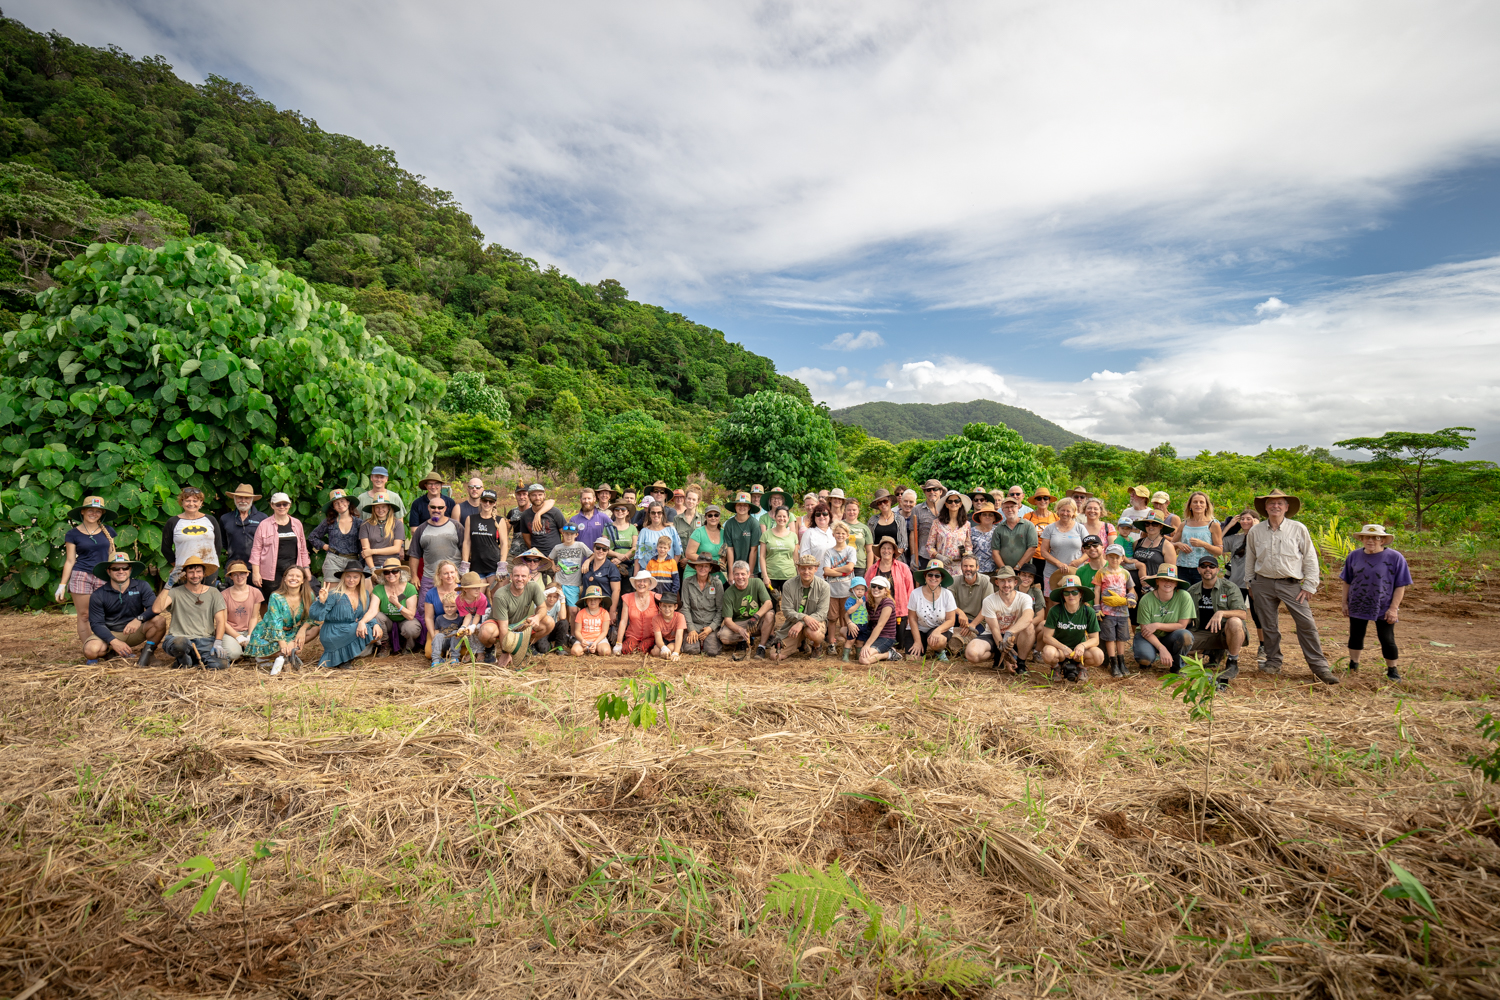 Tree Planting Crew 5.2019 - Photo by Martin Stringer Photography